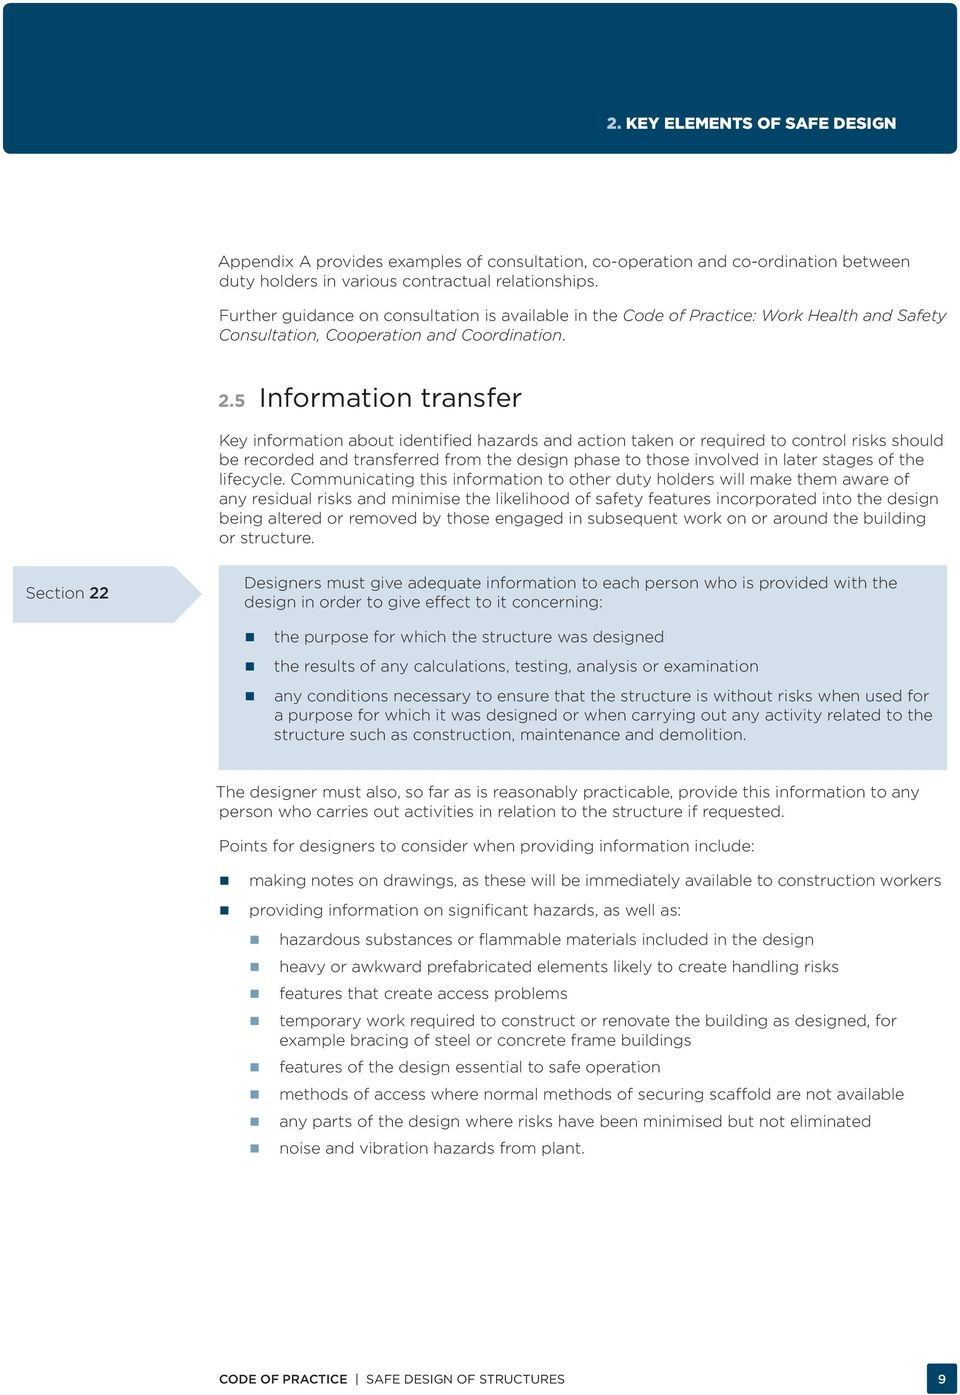 5 Information transfer Key information about identified hazards and action taken or required to control risks should be recorded and transferred from the design phase to those involved in later